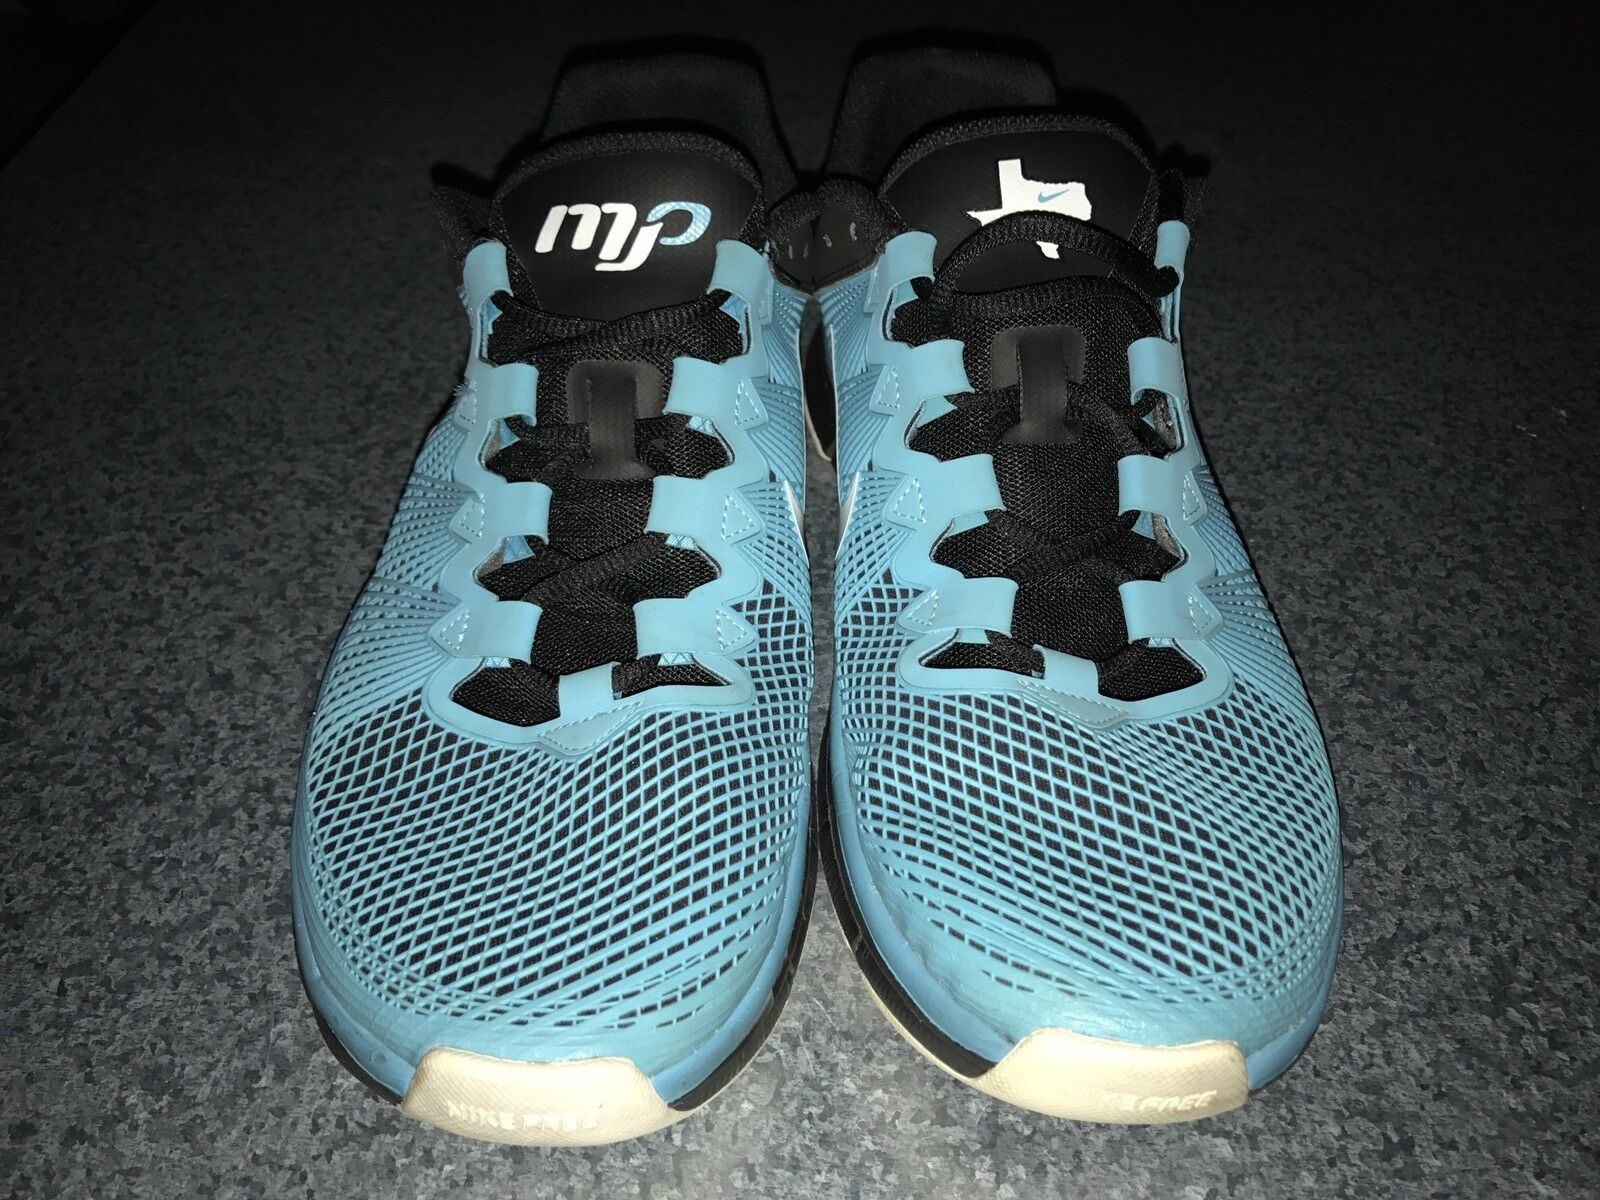 Nike Sample PE Player edition Michael Johnson Performance Free Trainer 3.0 Comfortable and good-looking